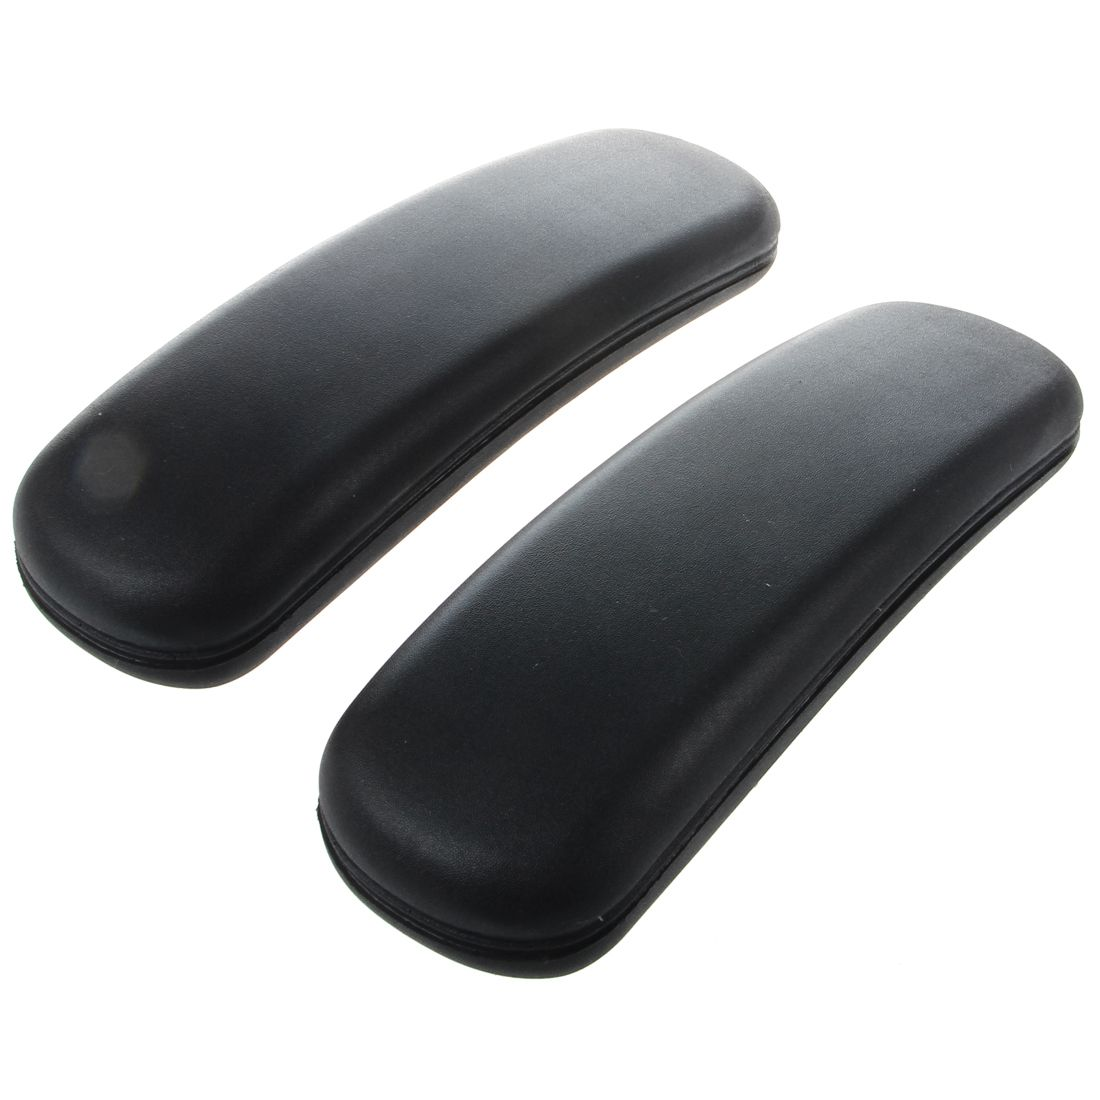 HOT GCZW-Office Chair Parts Arm Pad Armrest Replacement 9.75 x 3 (Black) hot parts